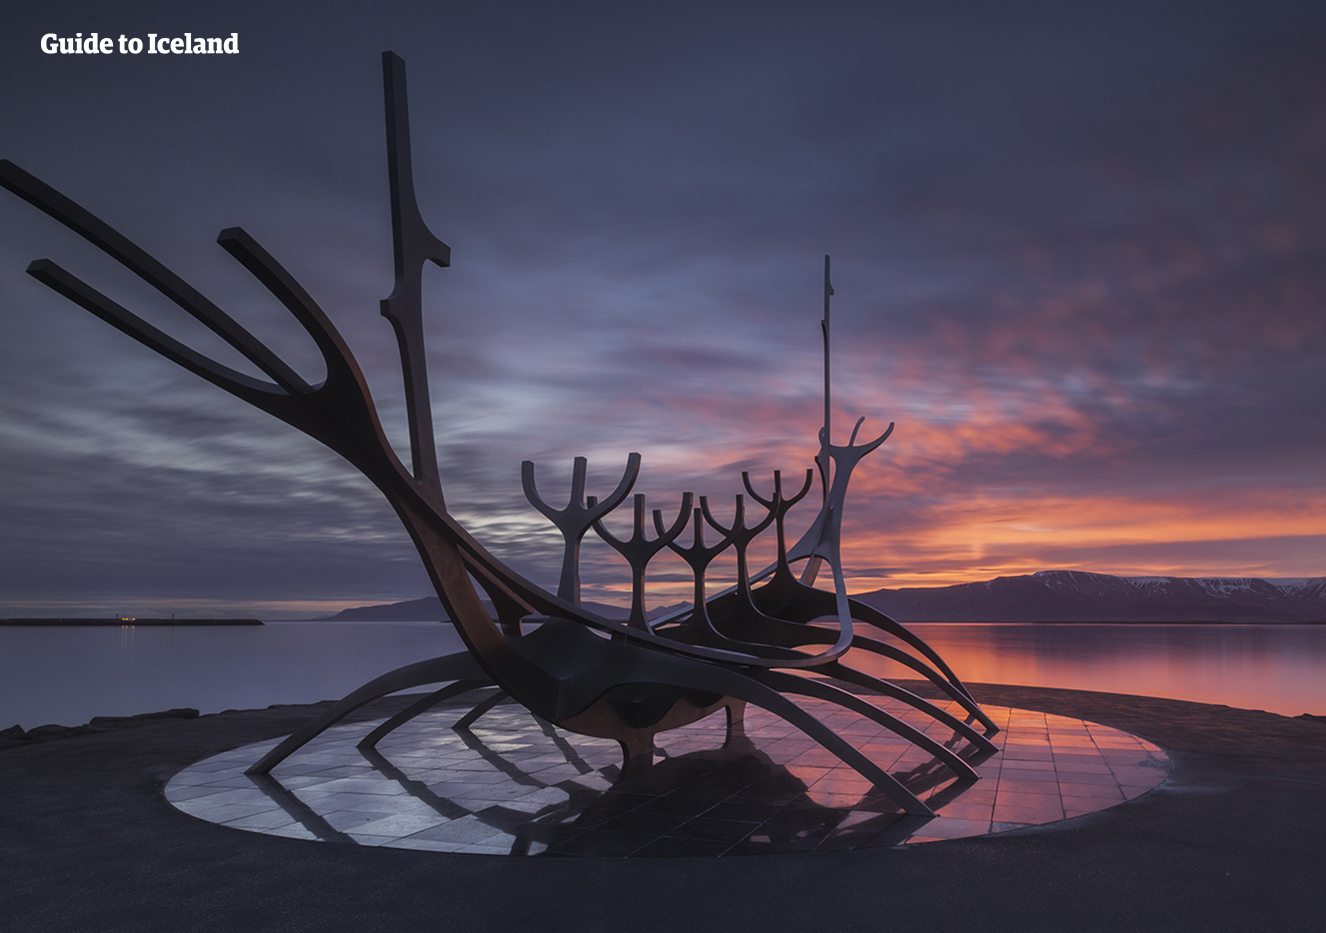 Guided 12 Day Summer Vacation Package of the Complete Ring Road of Iceland & Snaefellsnes Peninsula - day 12